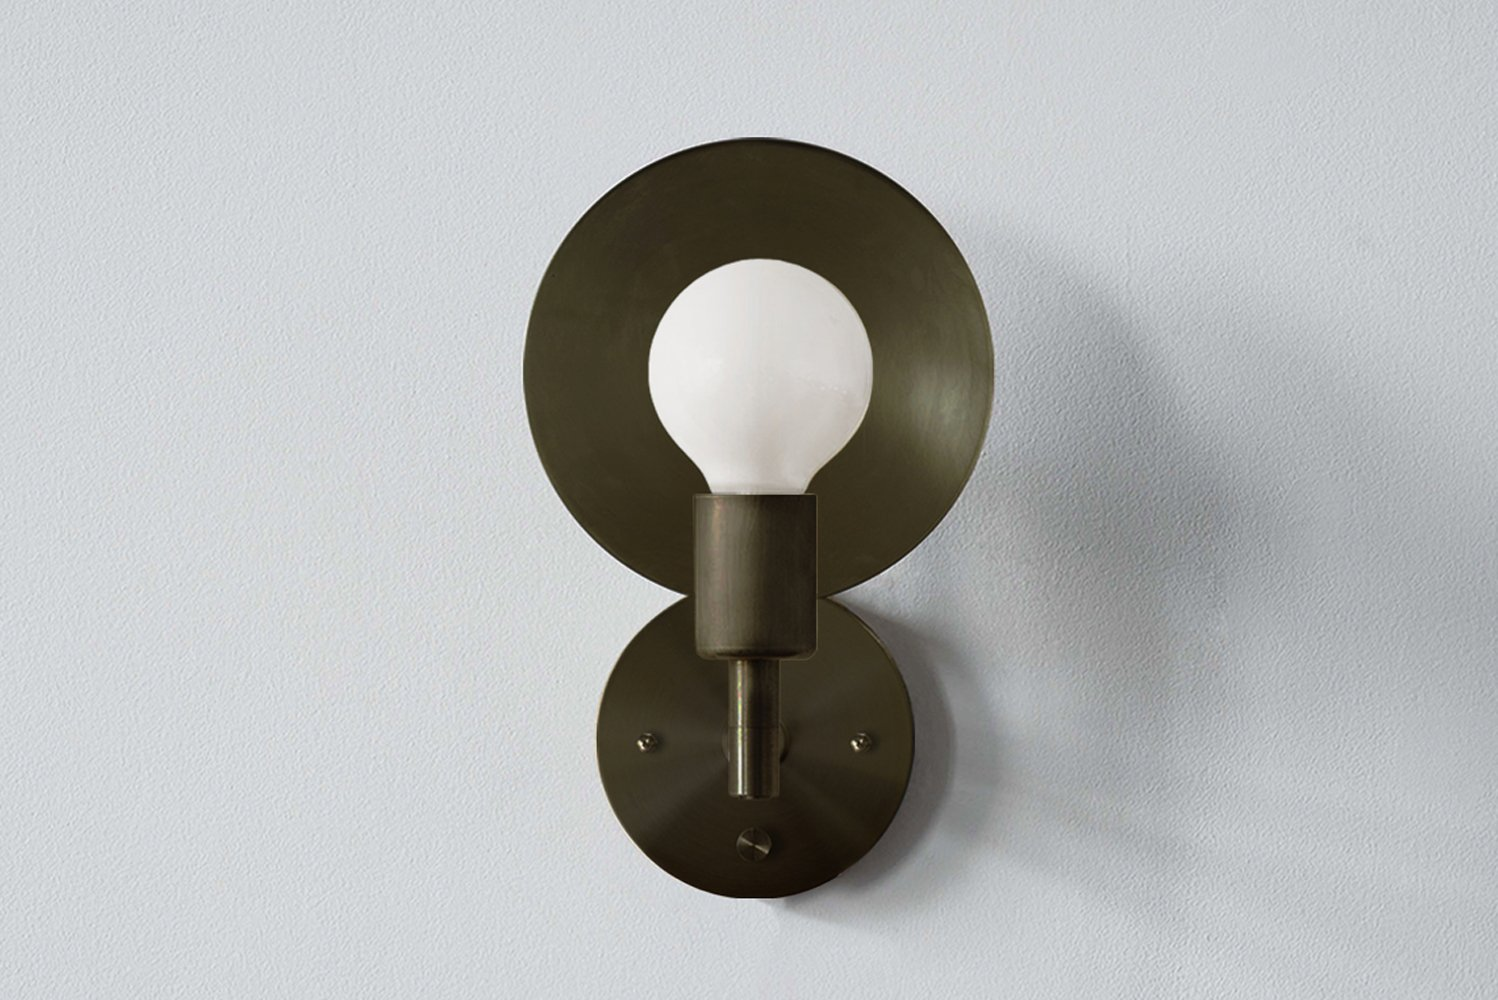 The sconce has a reflective spun brass disc rotating 320 degrees, so that the sconce can act as both a reflector and deflector of light.